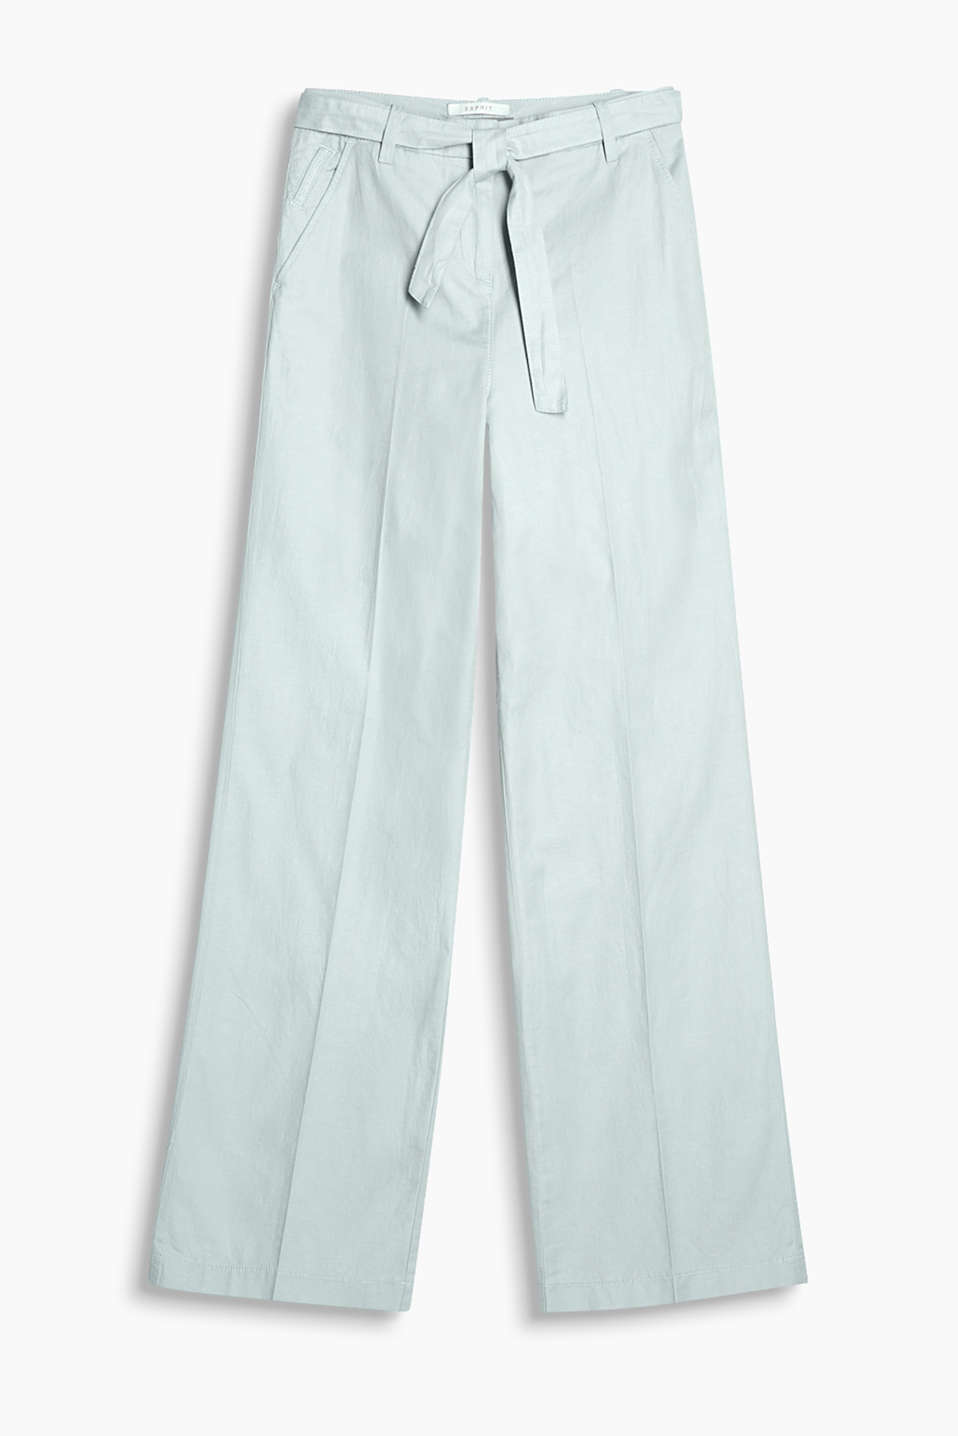 Trousers in a wide cut with a tie-around belt